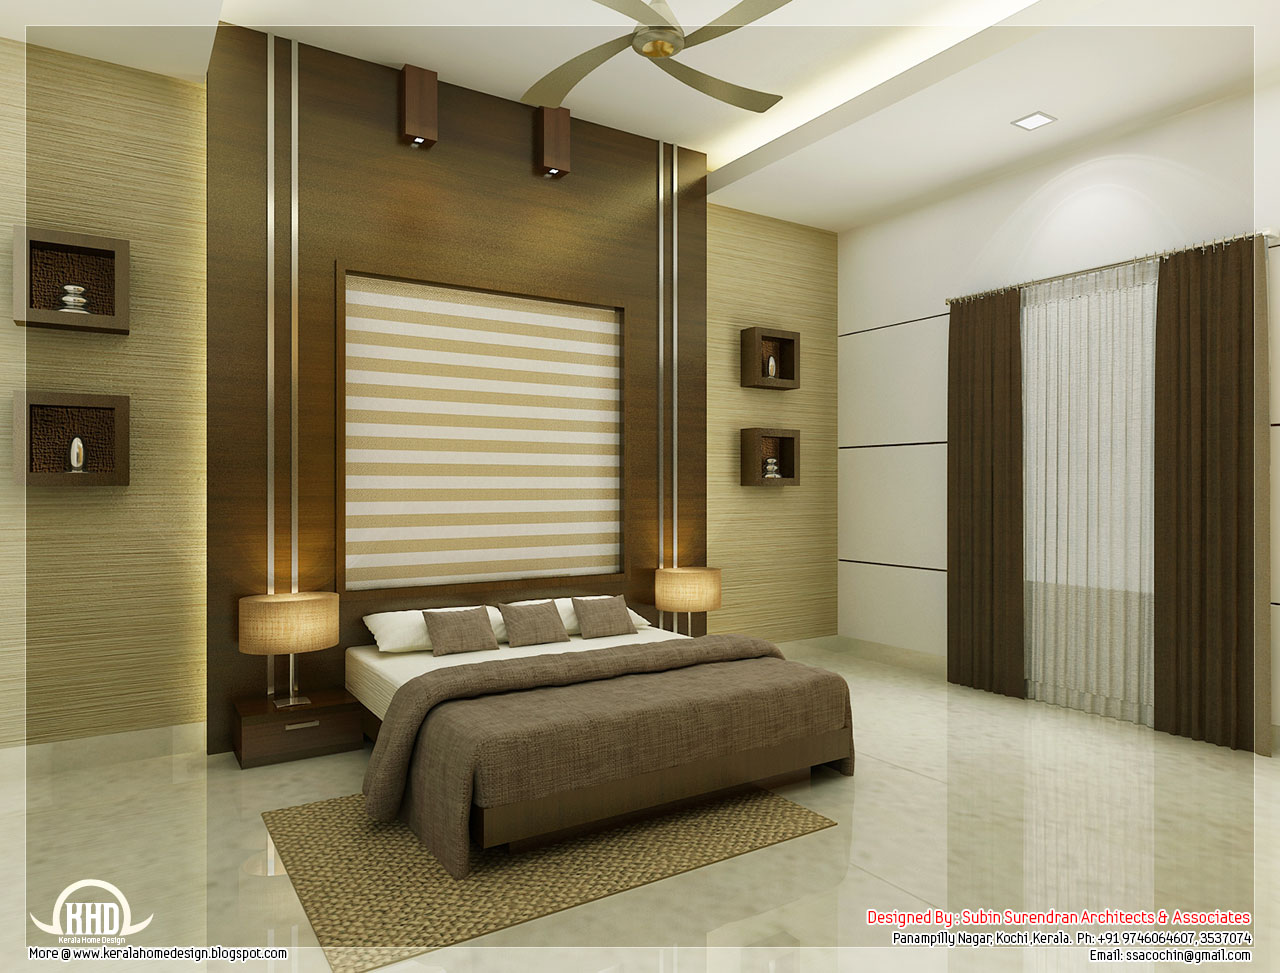 beautiful bedroom interior designs kerala home design ForBedroom Interior Design Images